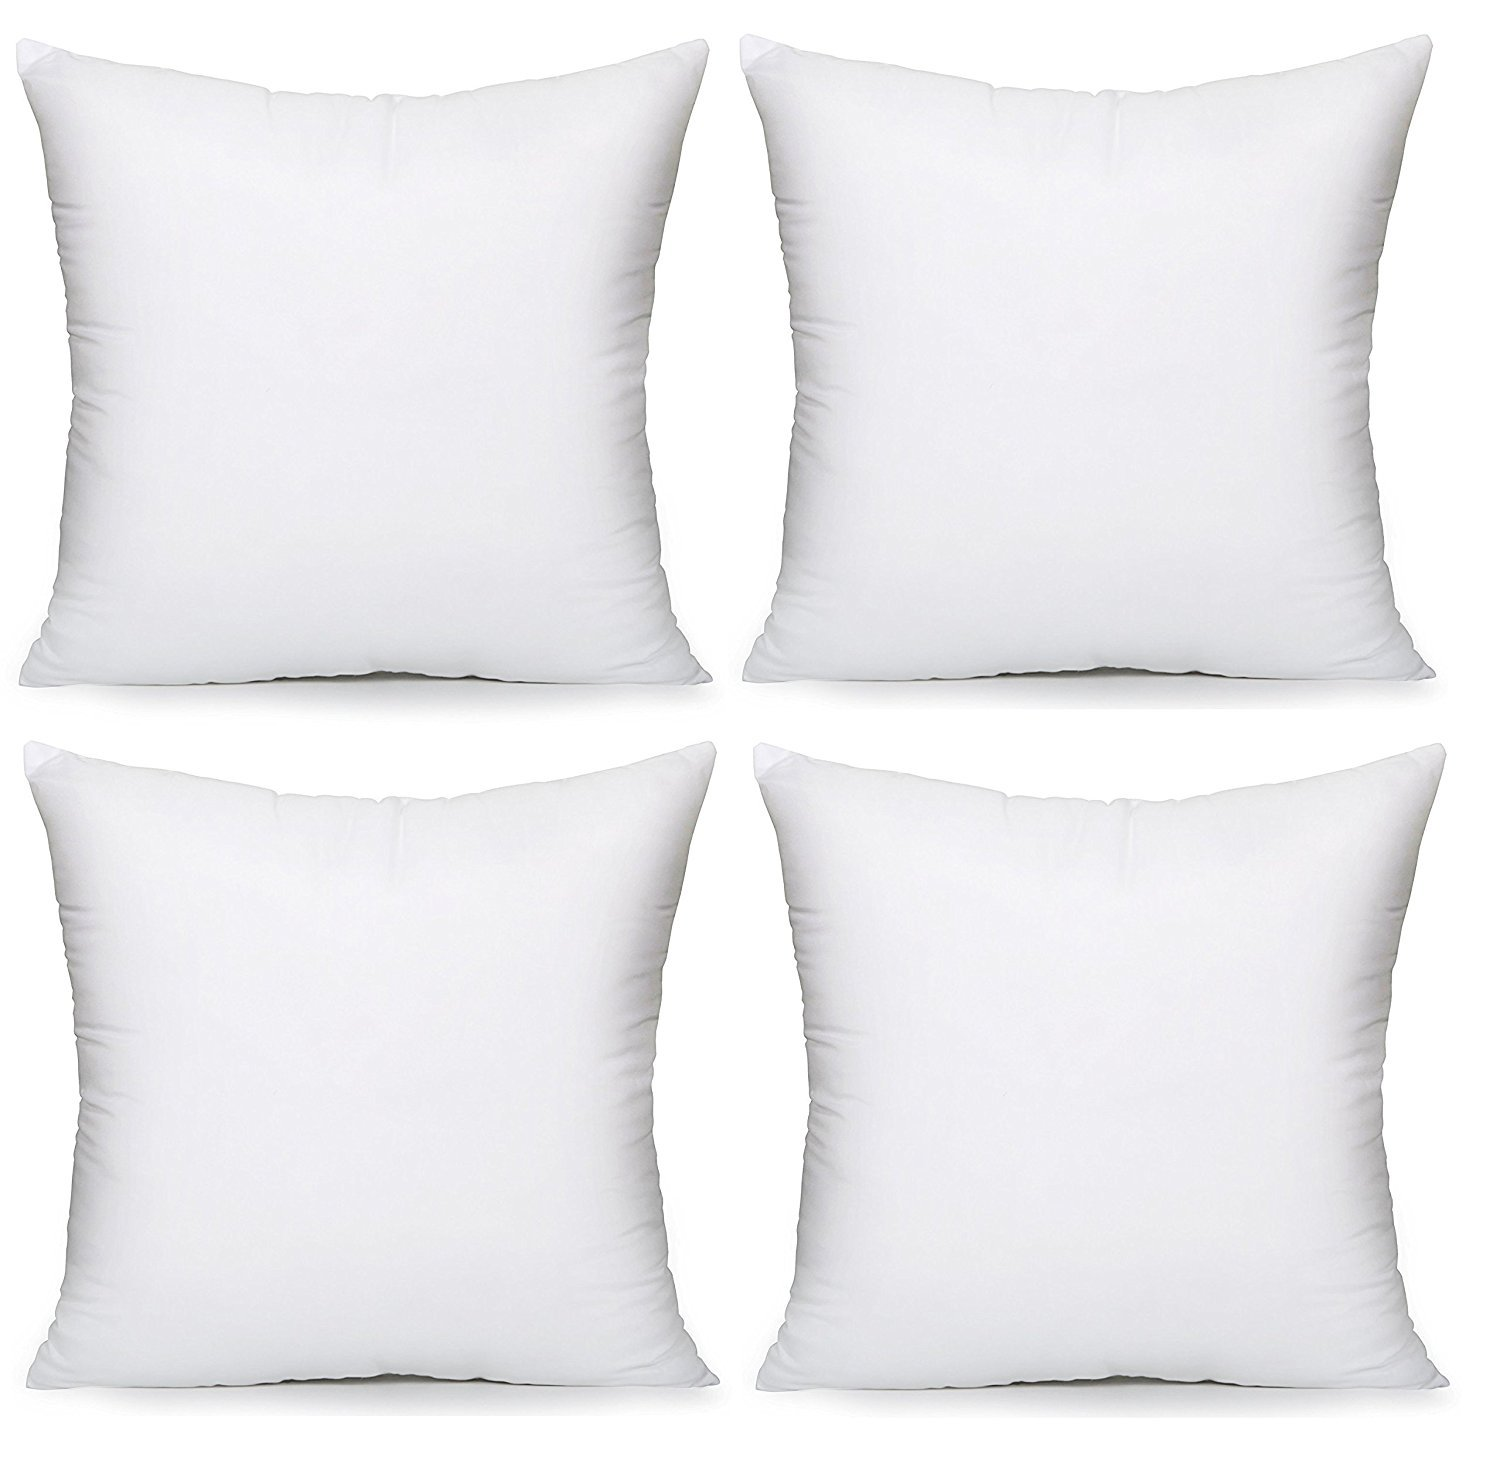 HIPPIH 4 Pack 20 x 20 Pillow Inserts, Hypoallergenic Decorative Square Pillow Form Insert with Zips, White